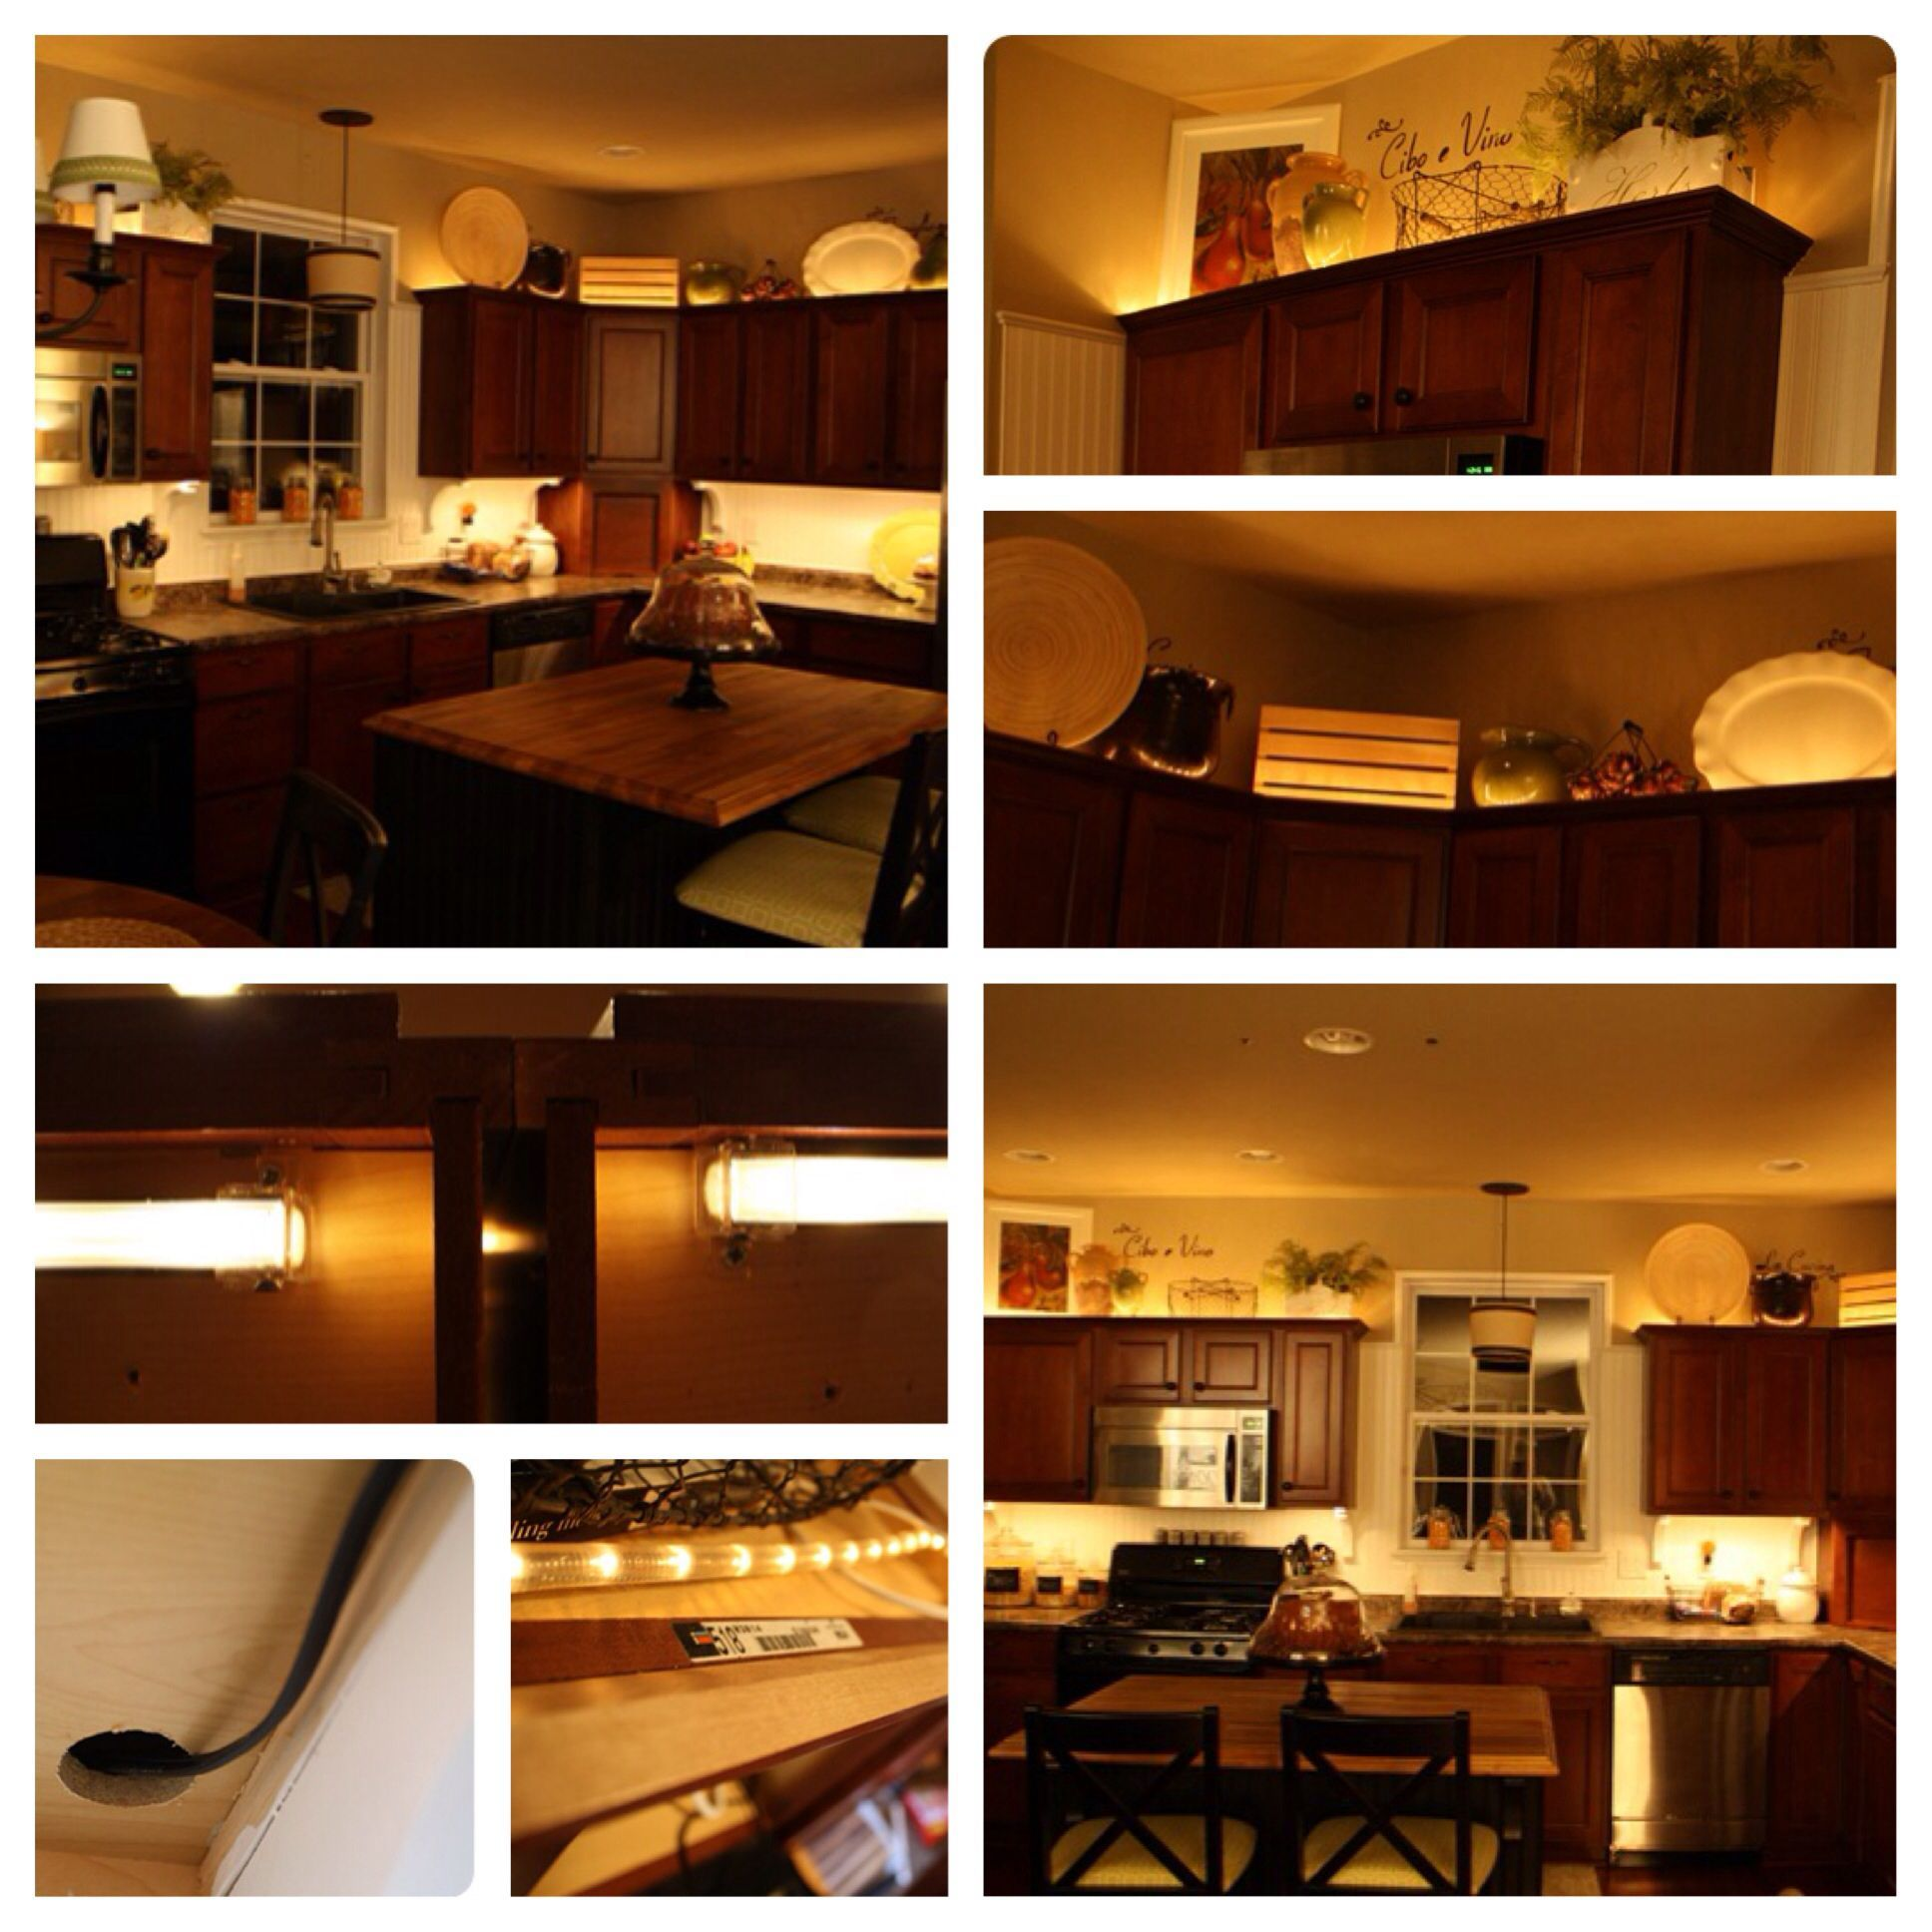 Adding Lights Above And Below The Cabinets Diy In 2020 Home Decor Kitchen Home Home Decor